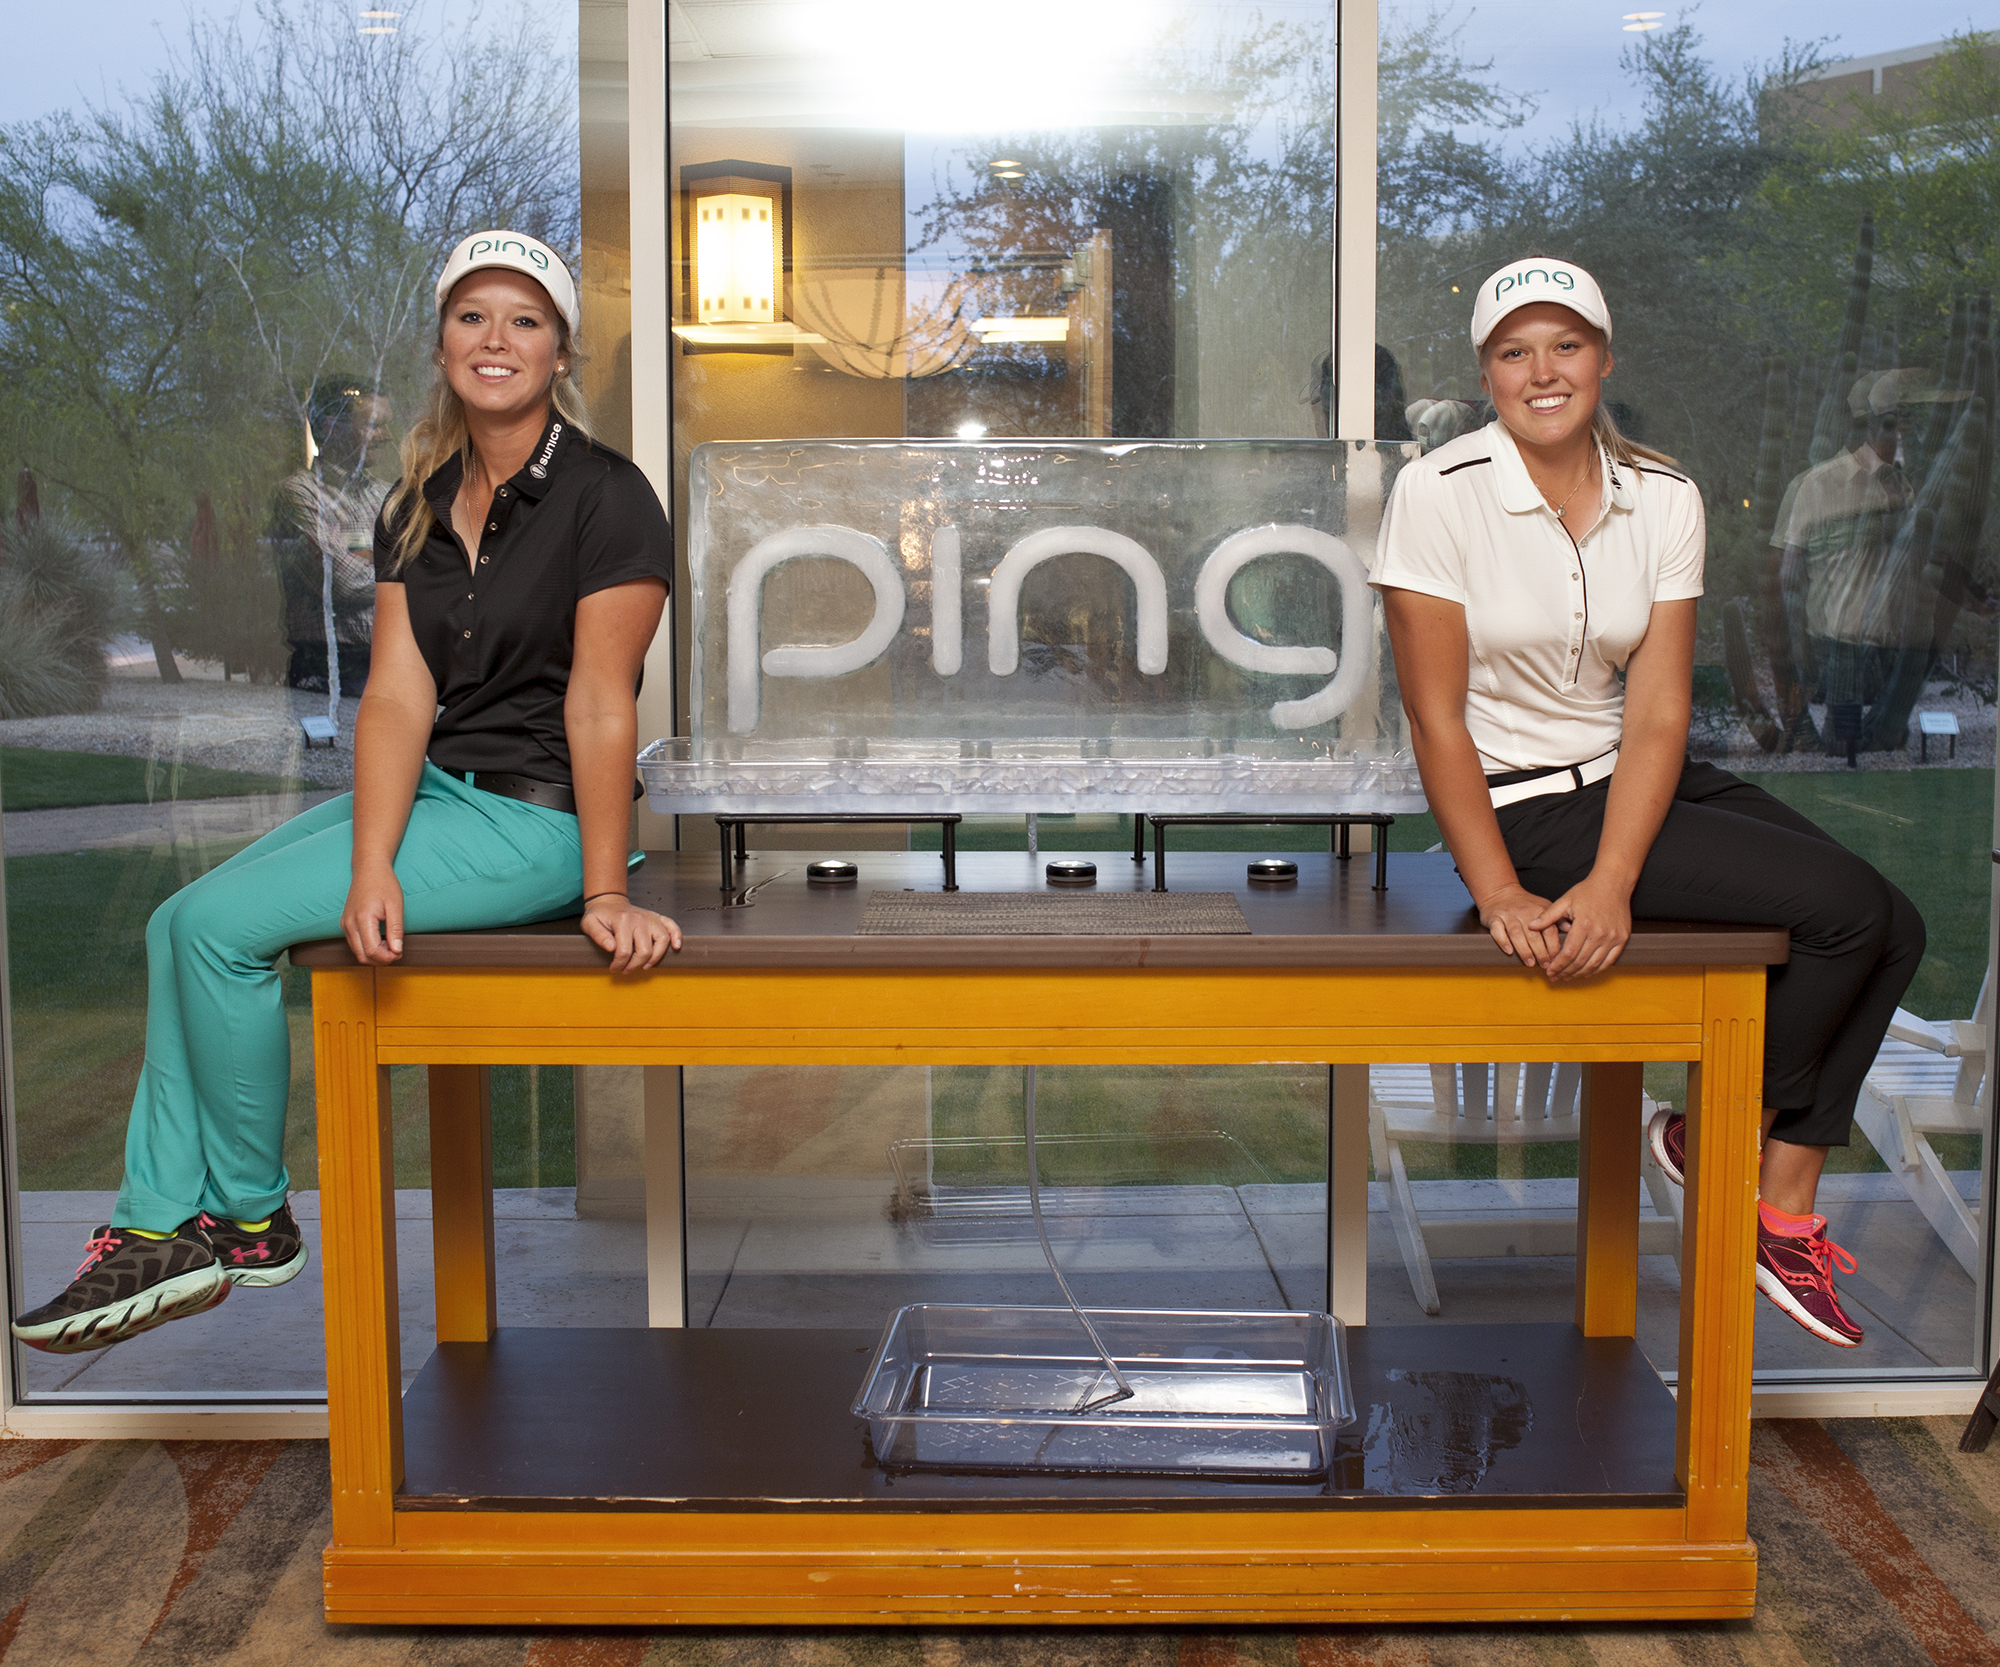 PING continues its long relationship with Brooke and Brittany Henderson